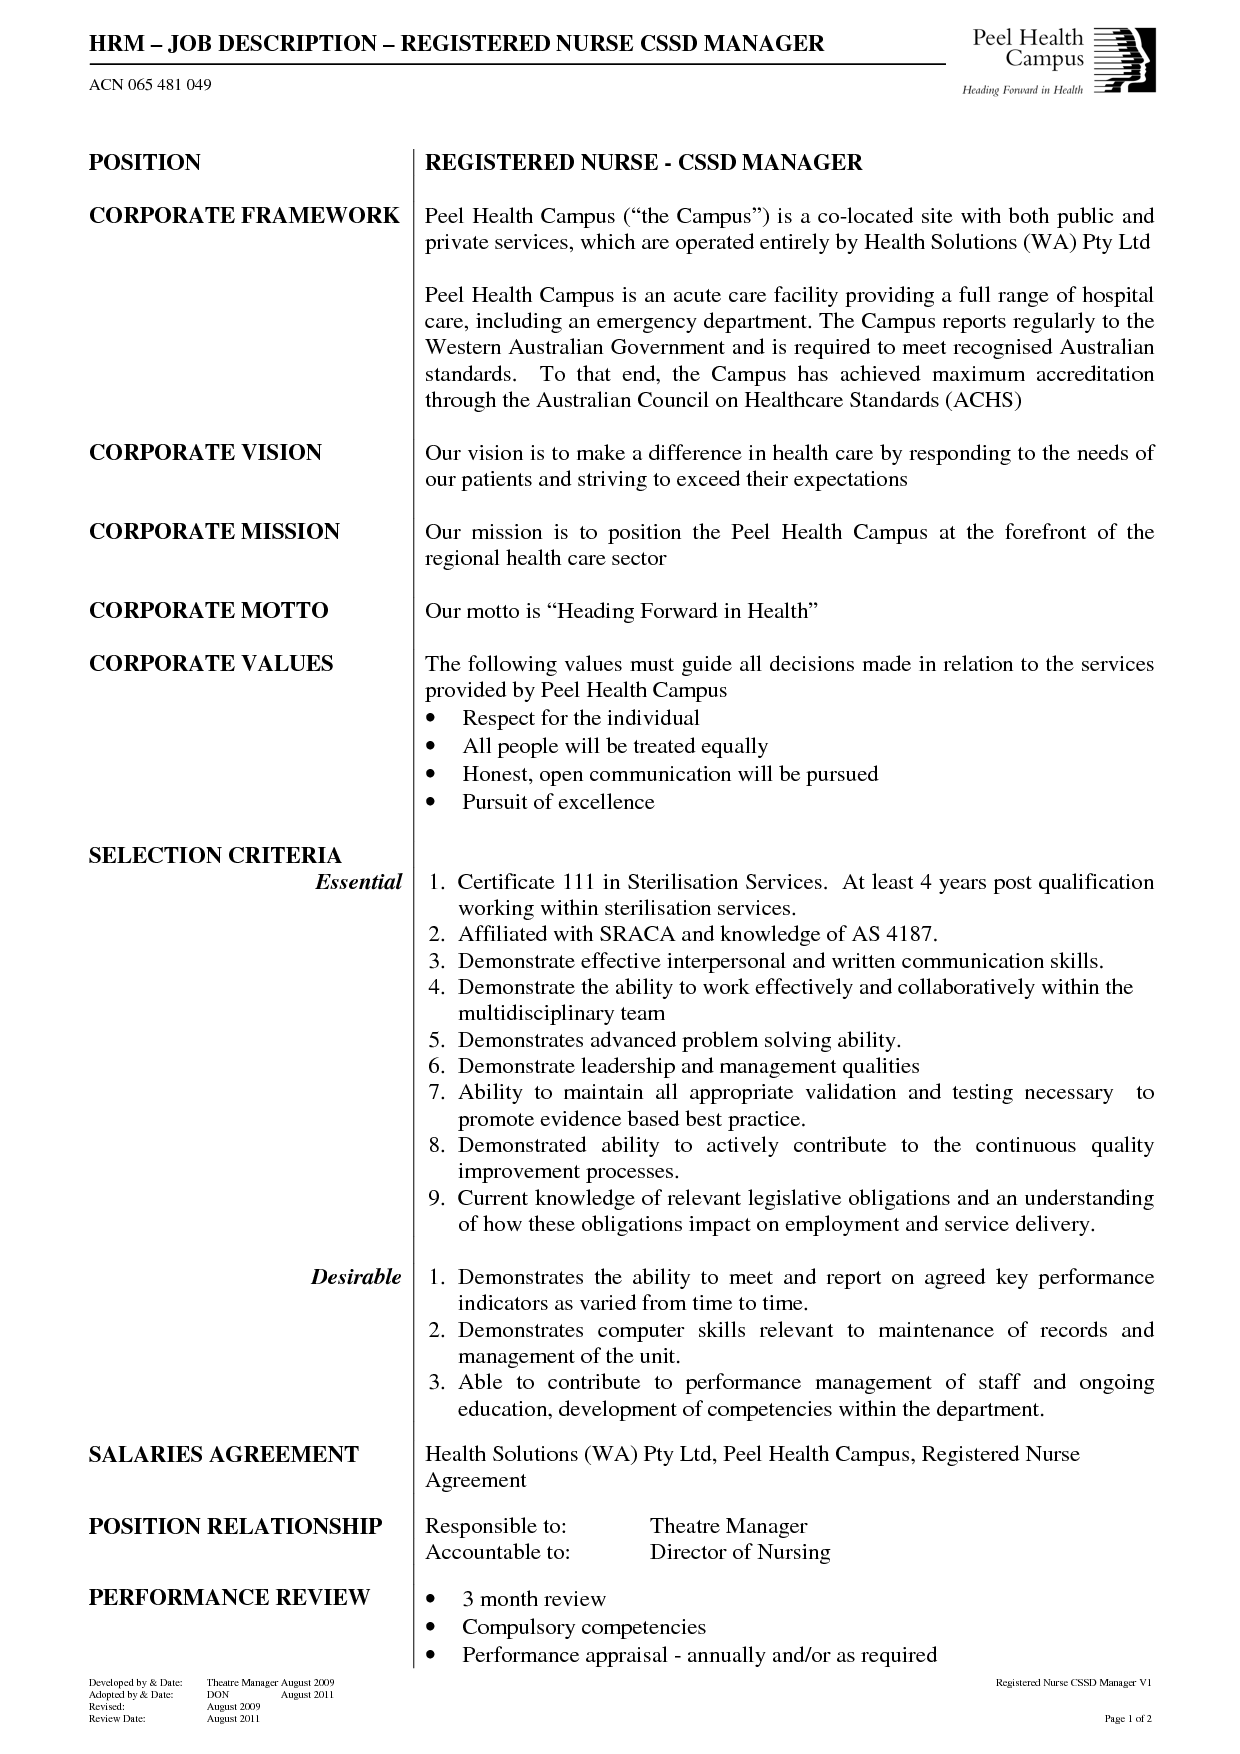 HRM Job description and Neonatal Nursing Registered CSSD manager Job Description